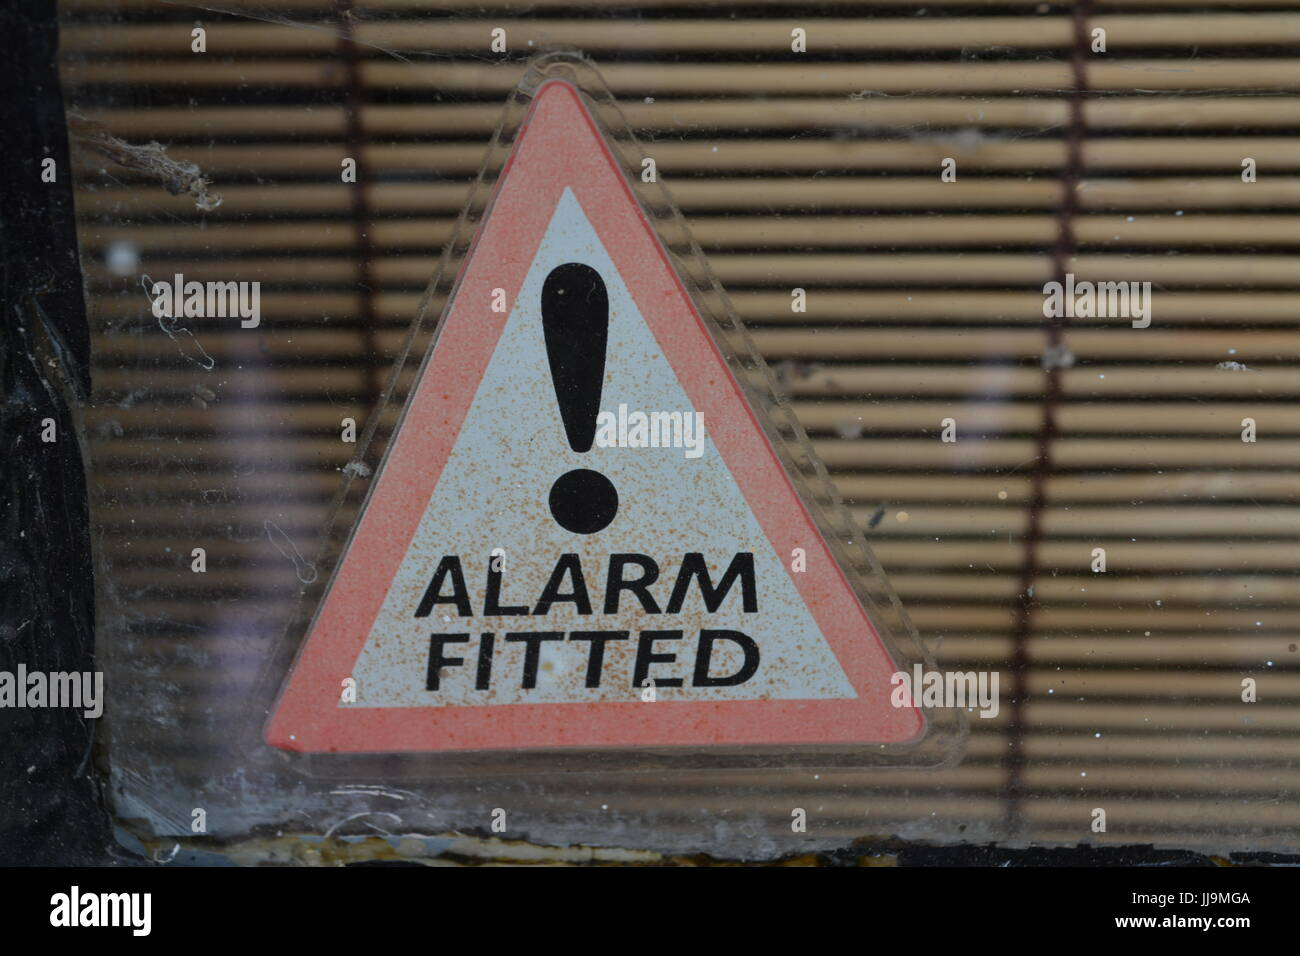 Alarm fitted triangular sign sticker on window glazing close up re warning sign house home security stop theft burglary - Stock Image